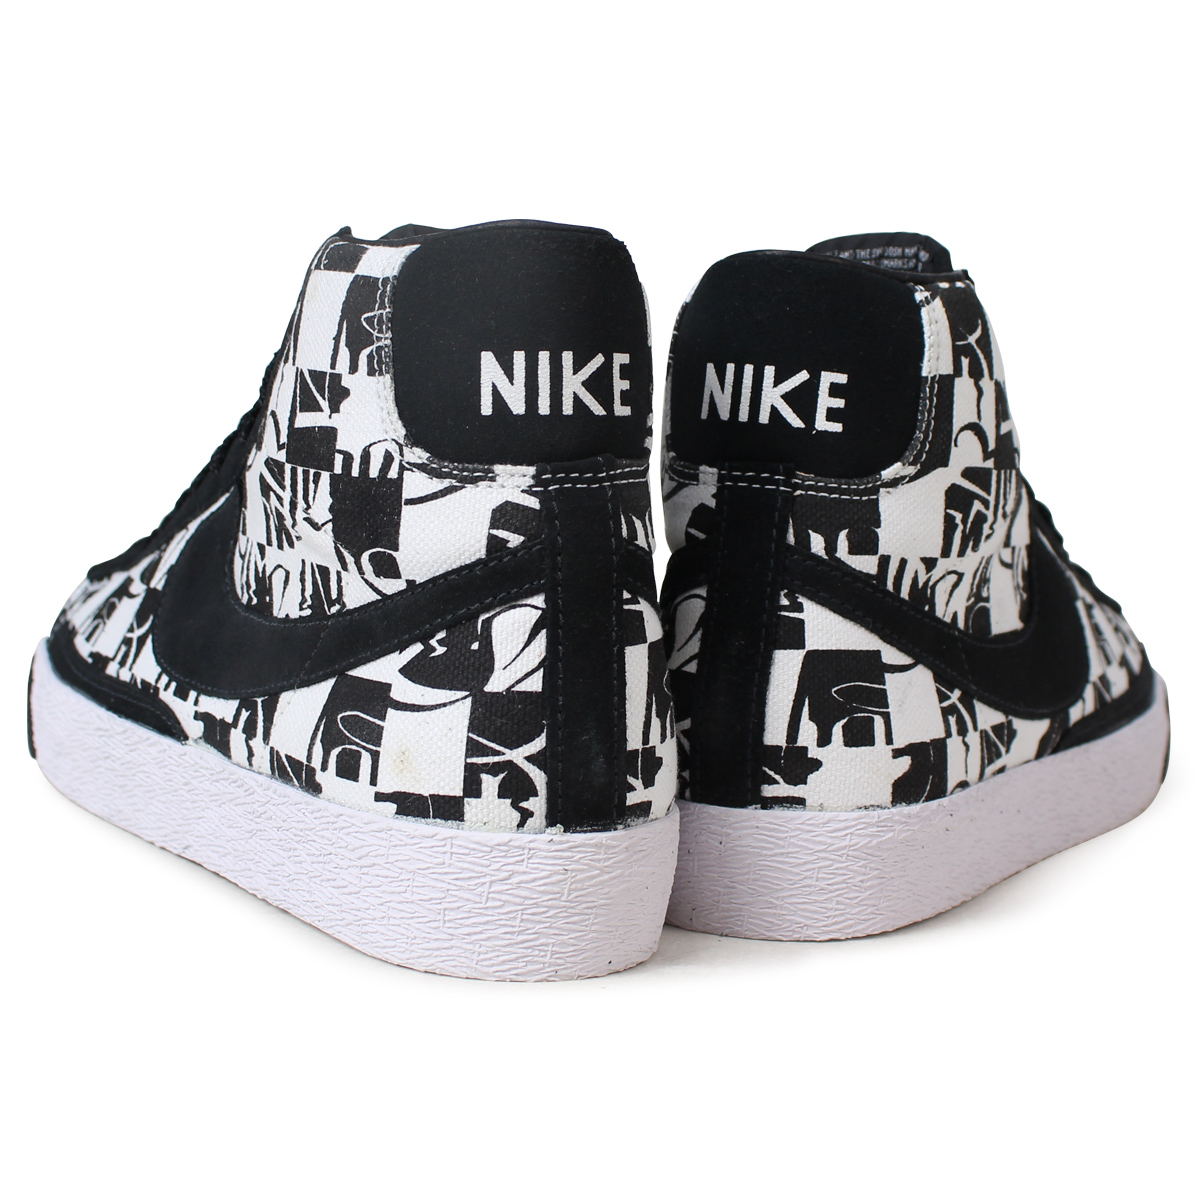 buy popular 3f83b 84398 NIKE BLAZER HIGH PREMIUM TZ NEIGHBORHOOD Nike blazer sneakers 332,286-101  white [185]